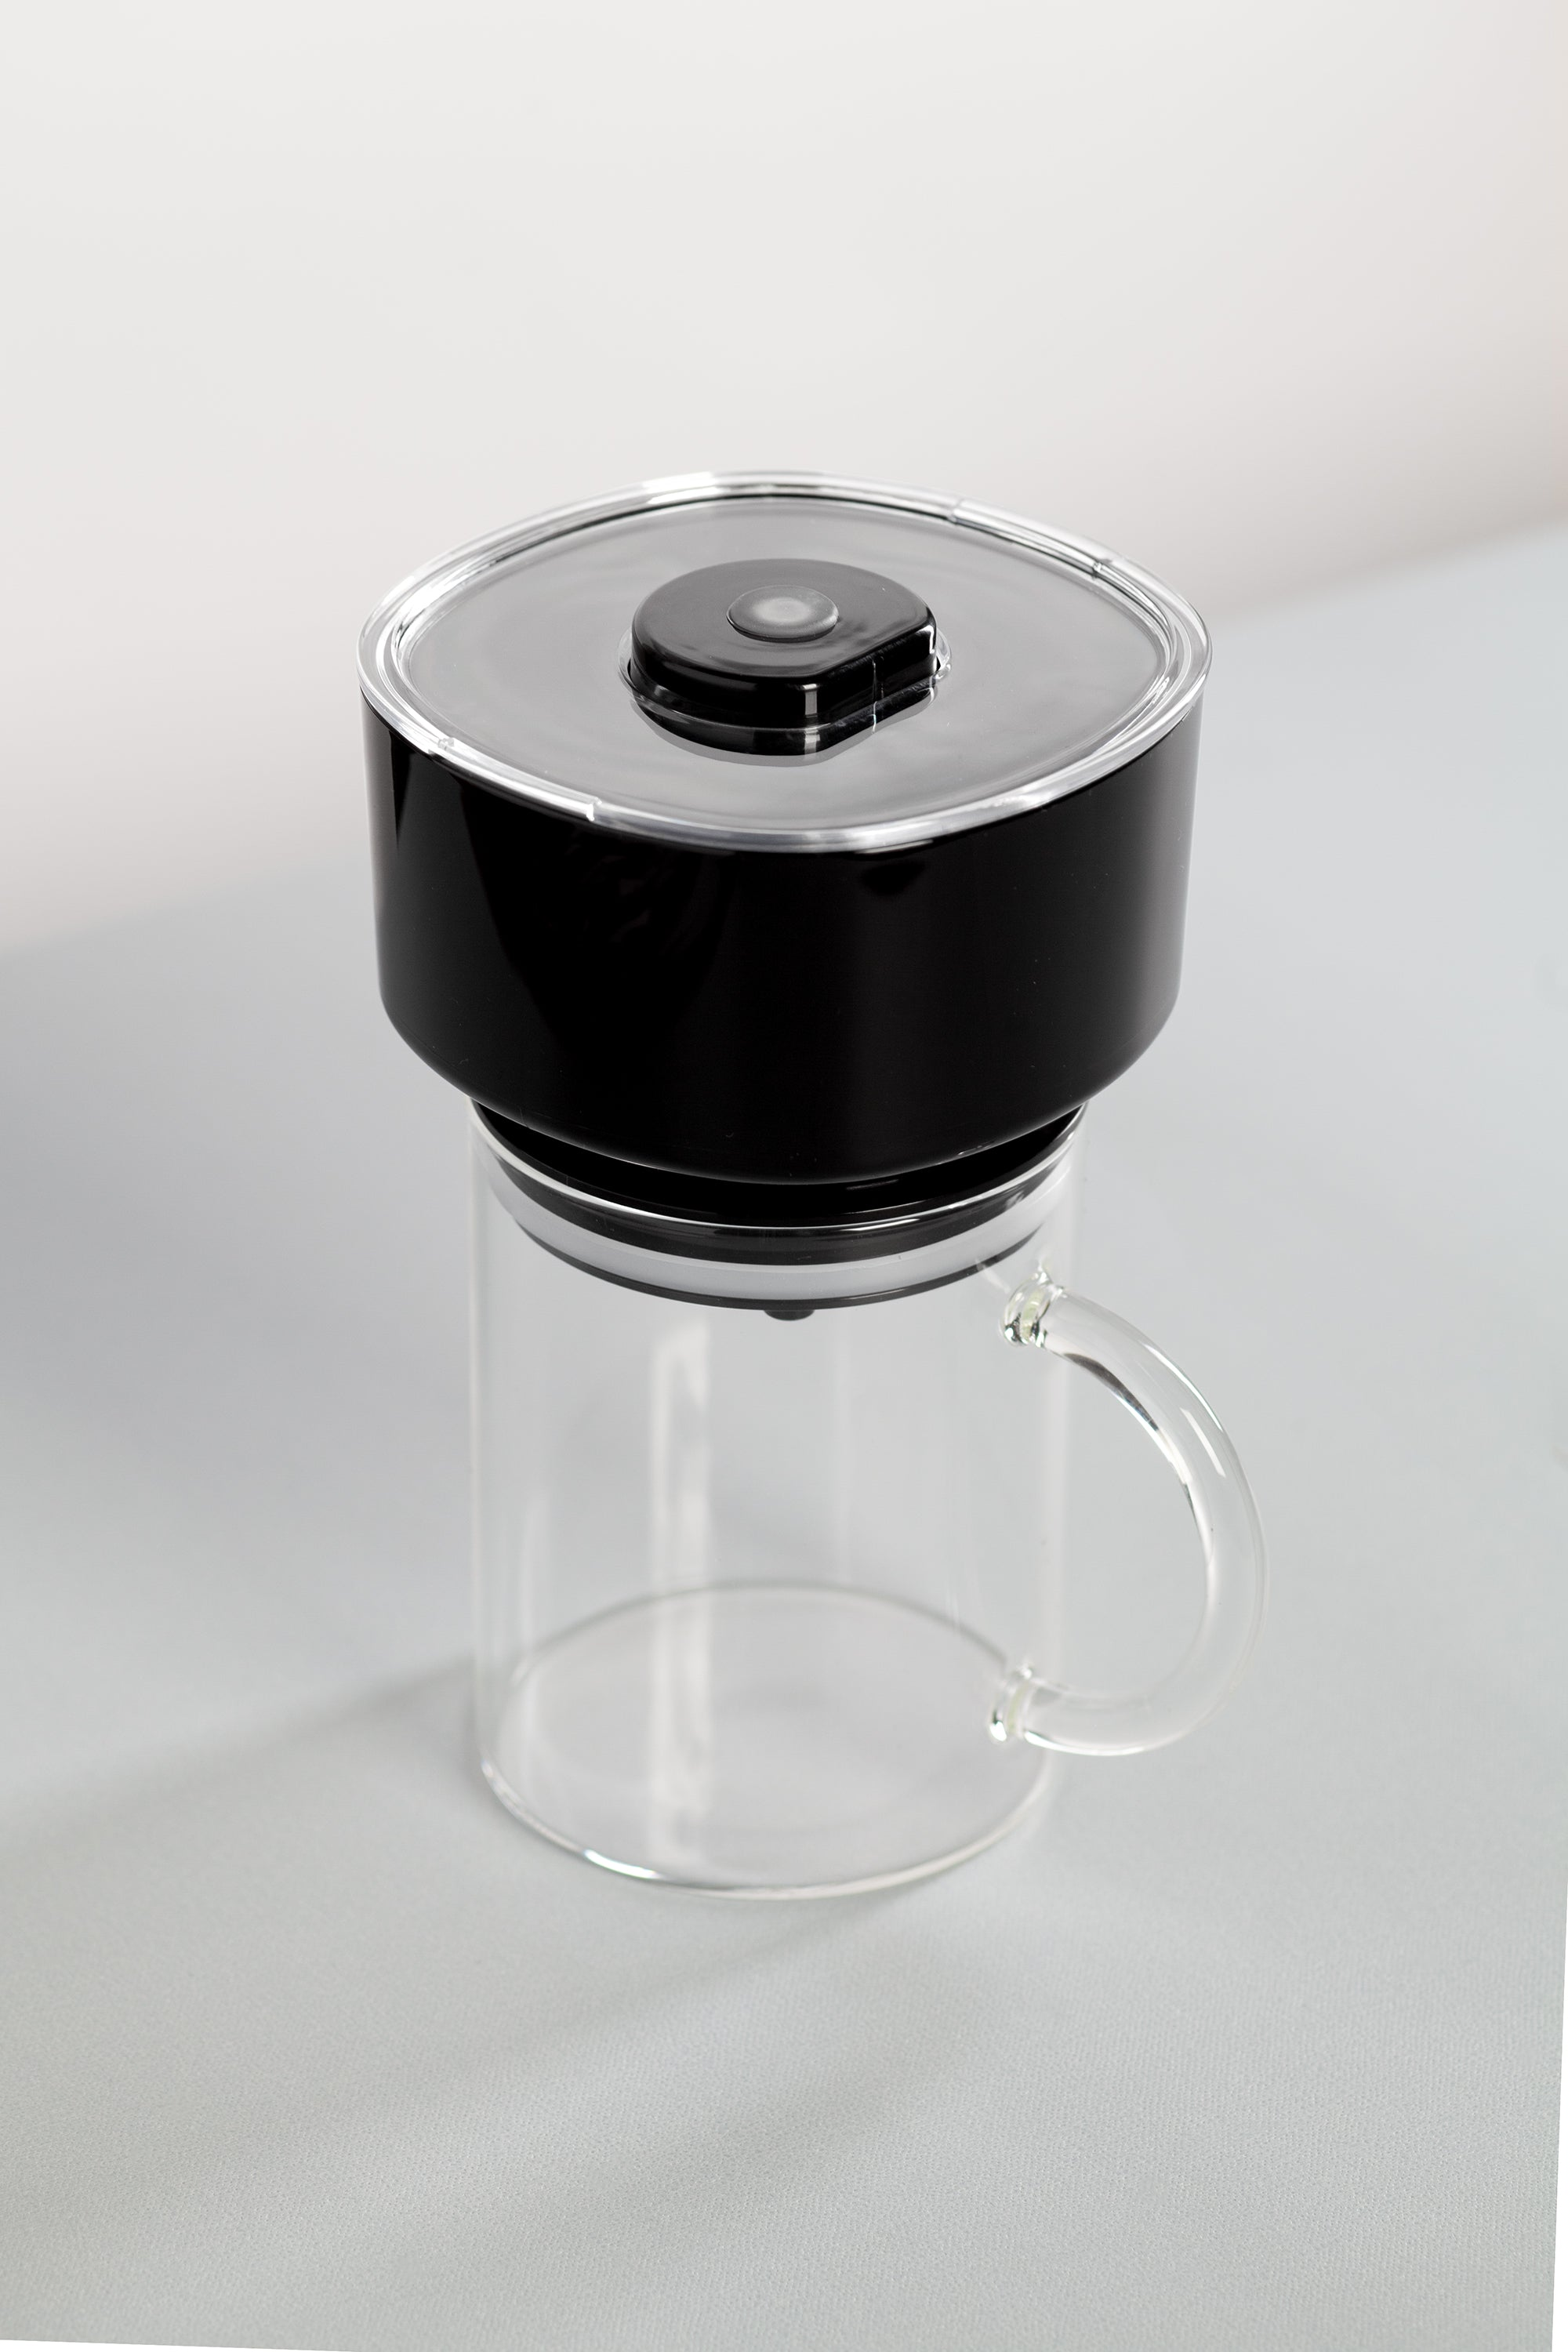 FrankOne™, the first Vacuum-Powered Coffee Maker